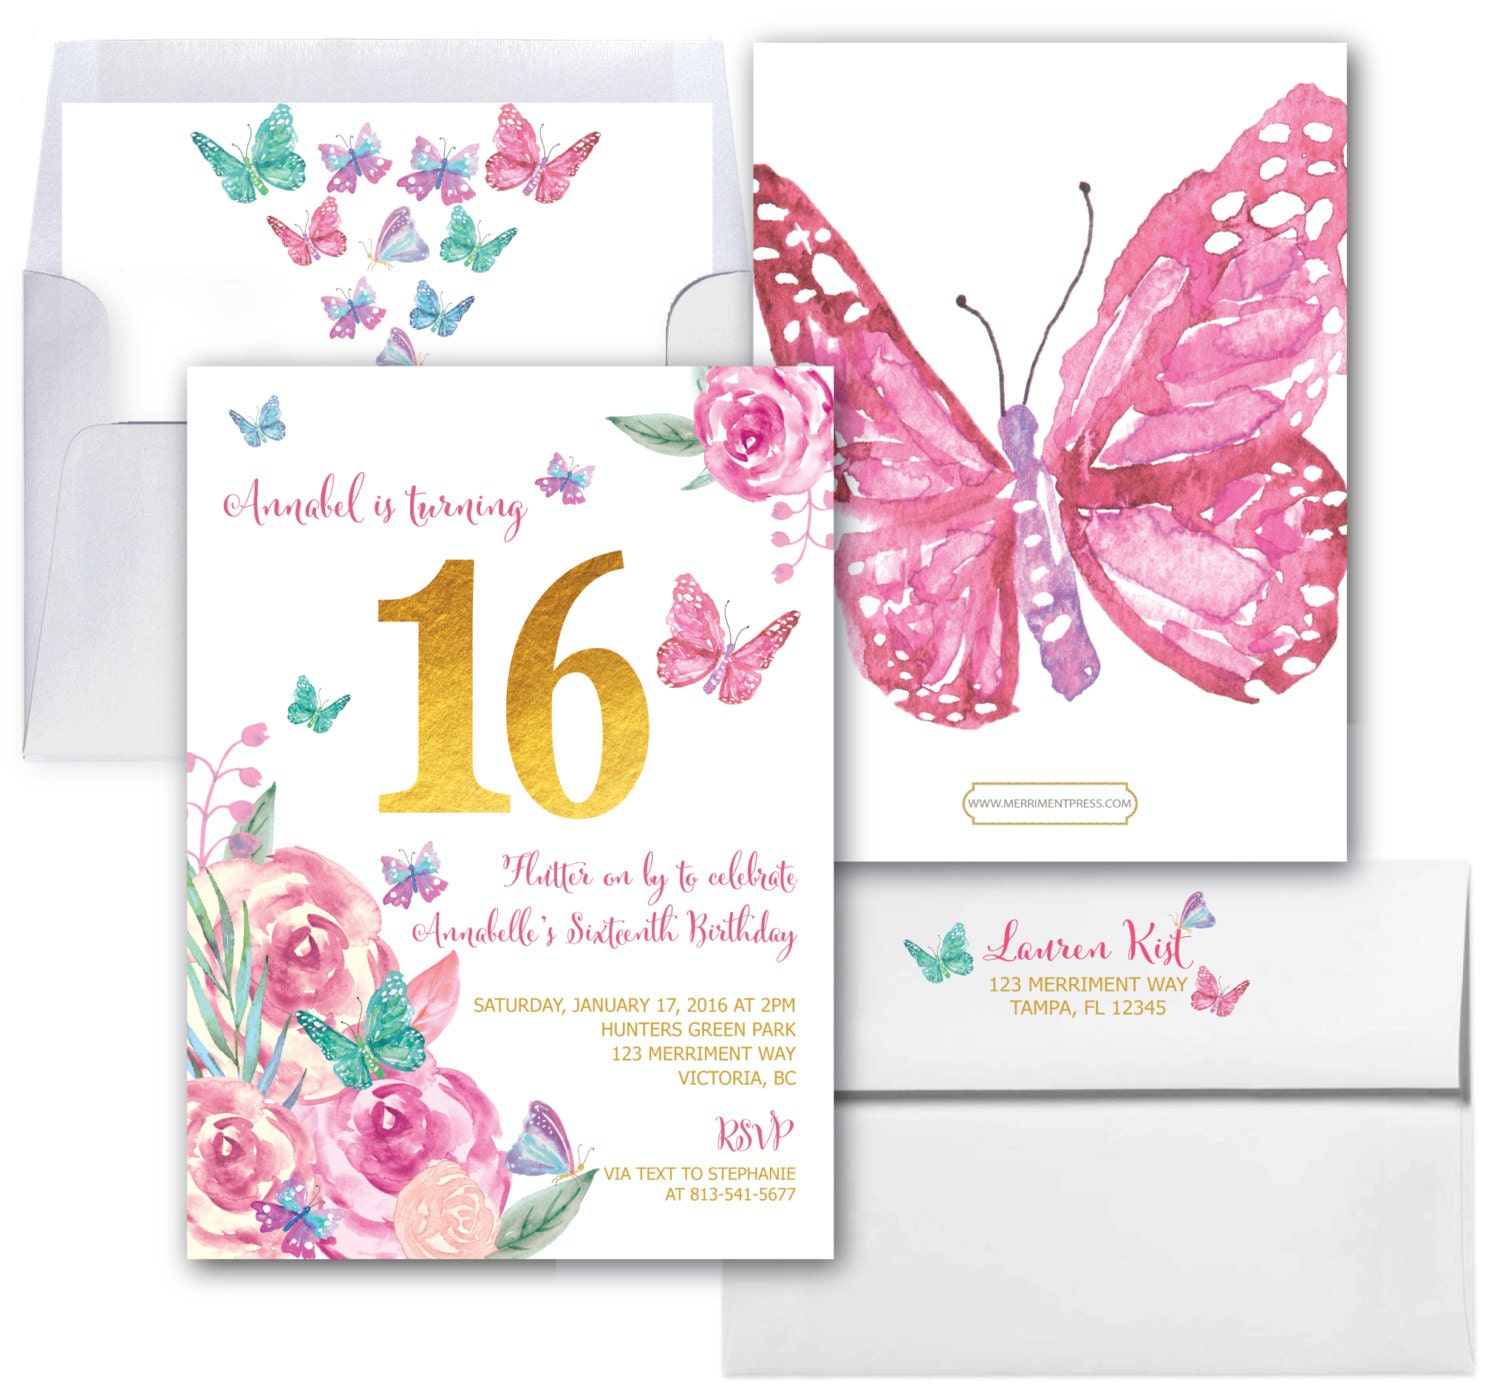 Butterfly Sweet Sixteen Invitation Birthday Invite 16 Butterflies Pink Gold Purple Floral Watercolor Printed